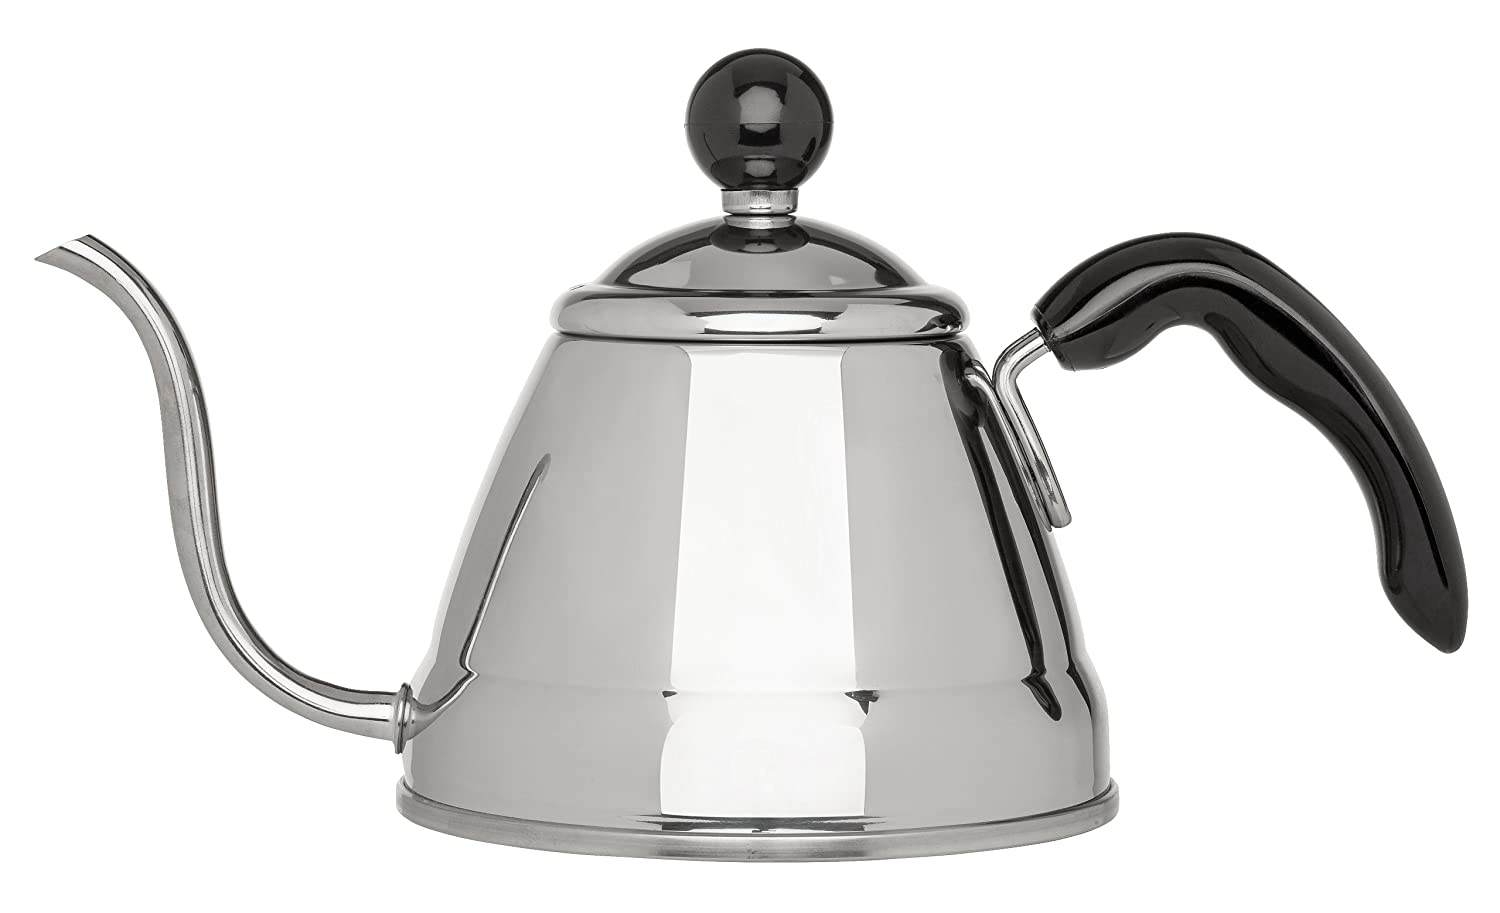 10 Best Tea Kettles 2019 Review and Guide 4